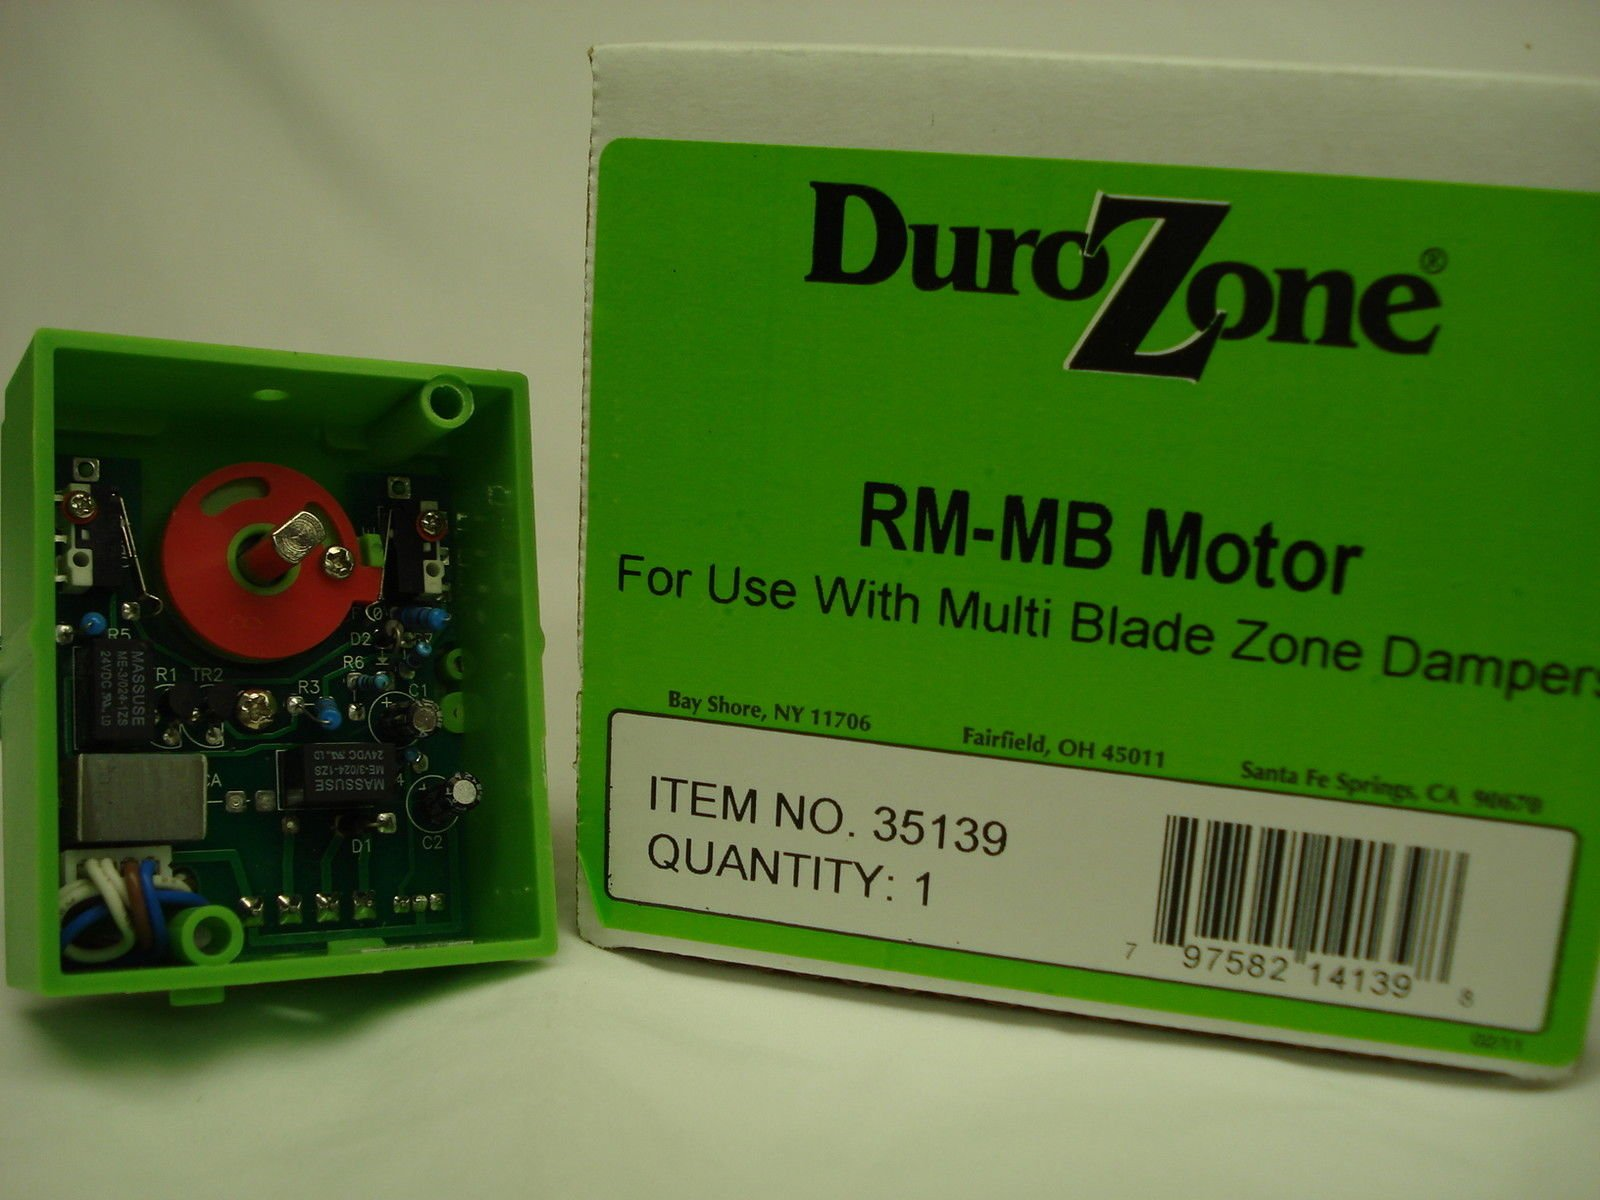 DuroZone RM-MB Replacement Damper Motor # 35139 by Duro Zone (Image #3)